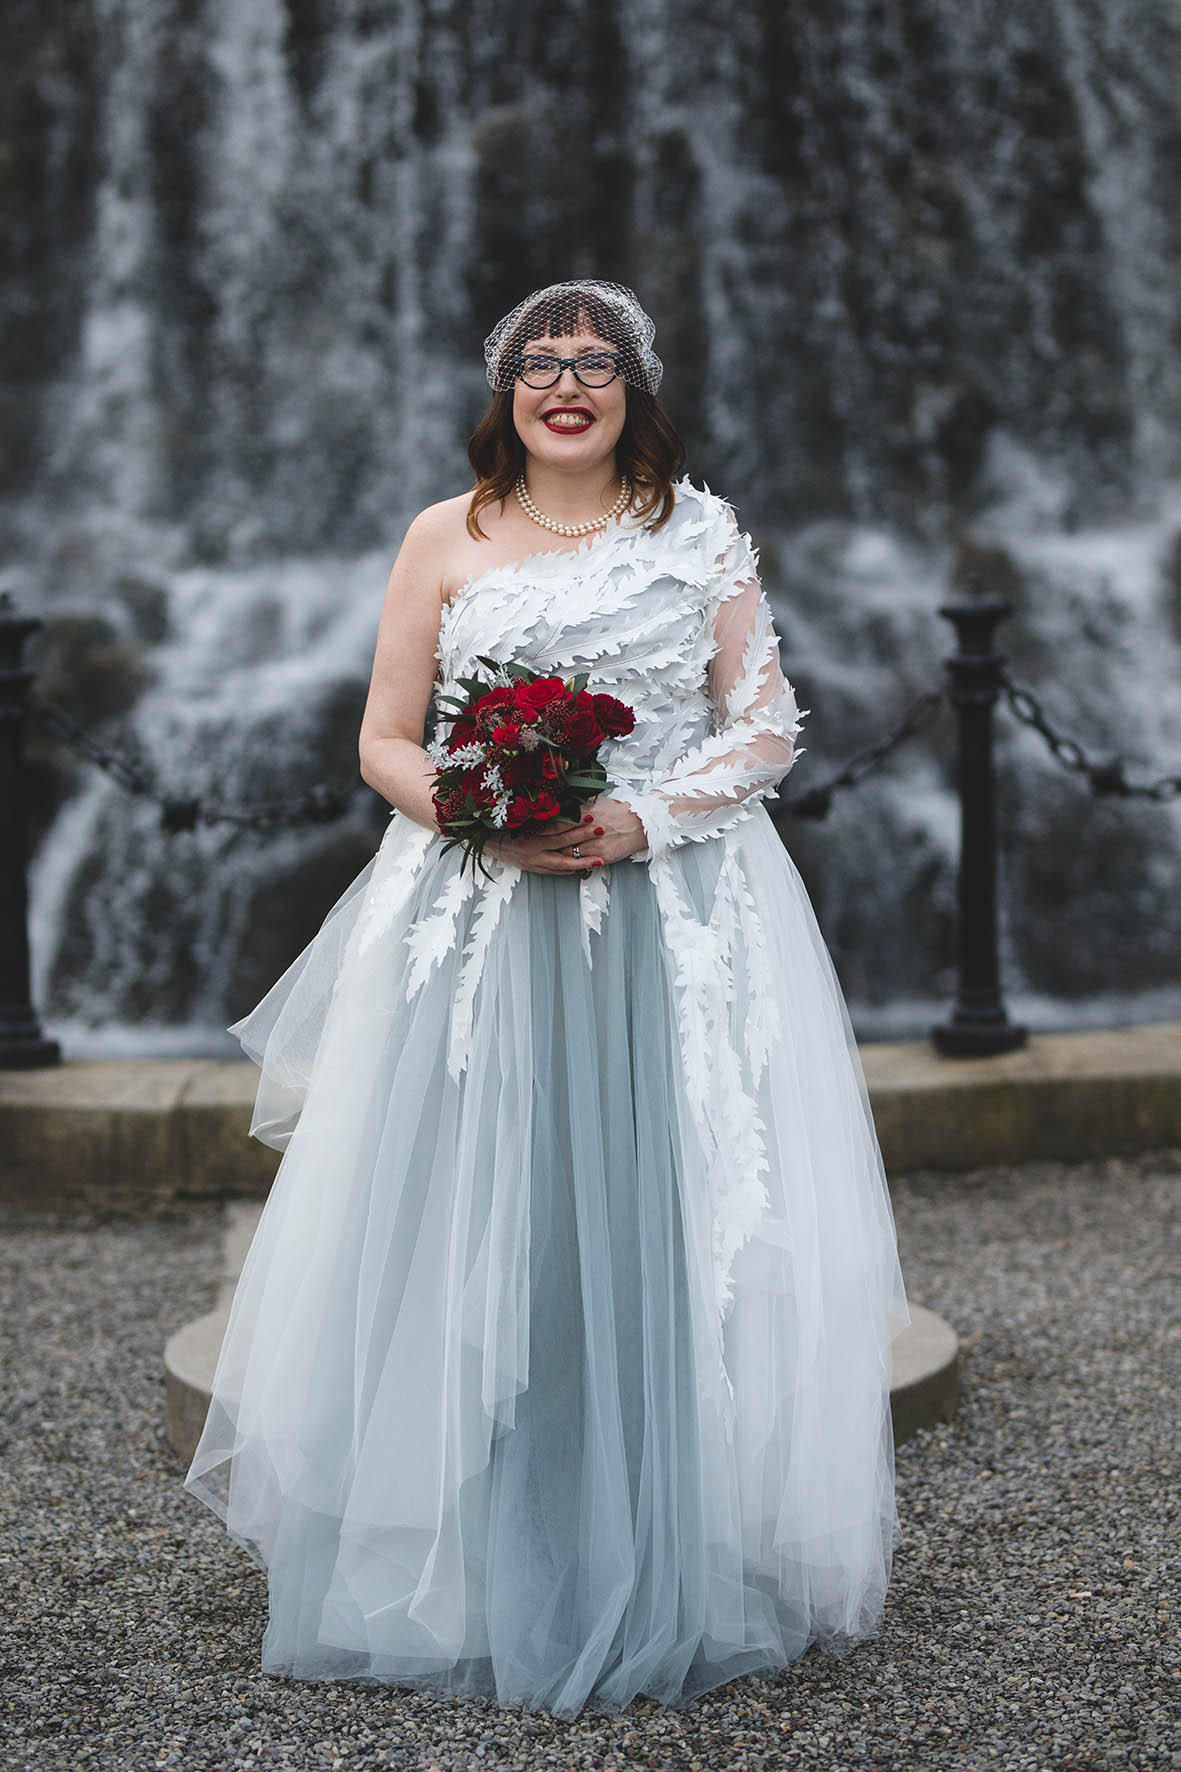 alternative gray white and blue toned wedding dress with cutout leaf shapes and a birdcage veil